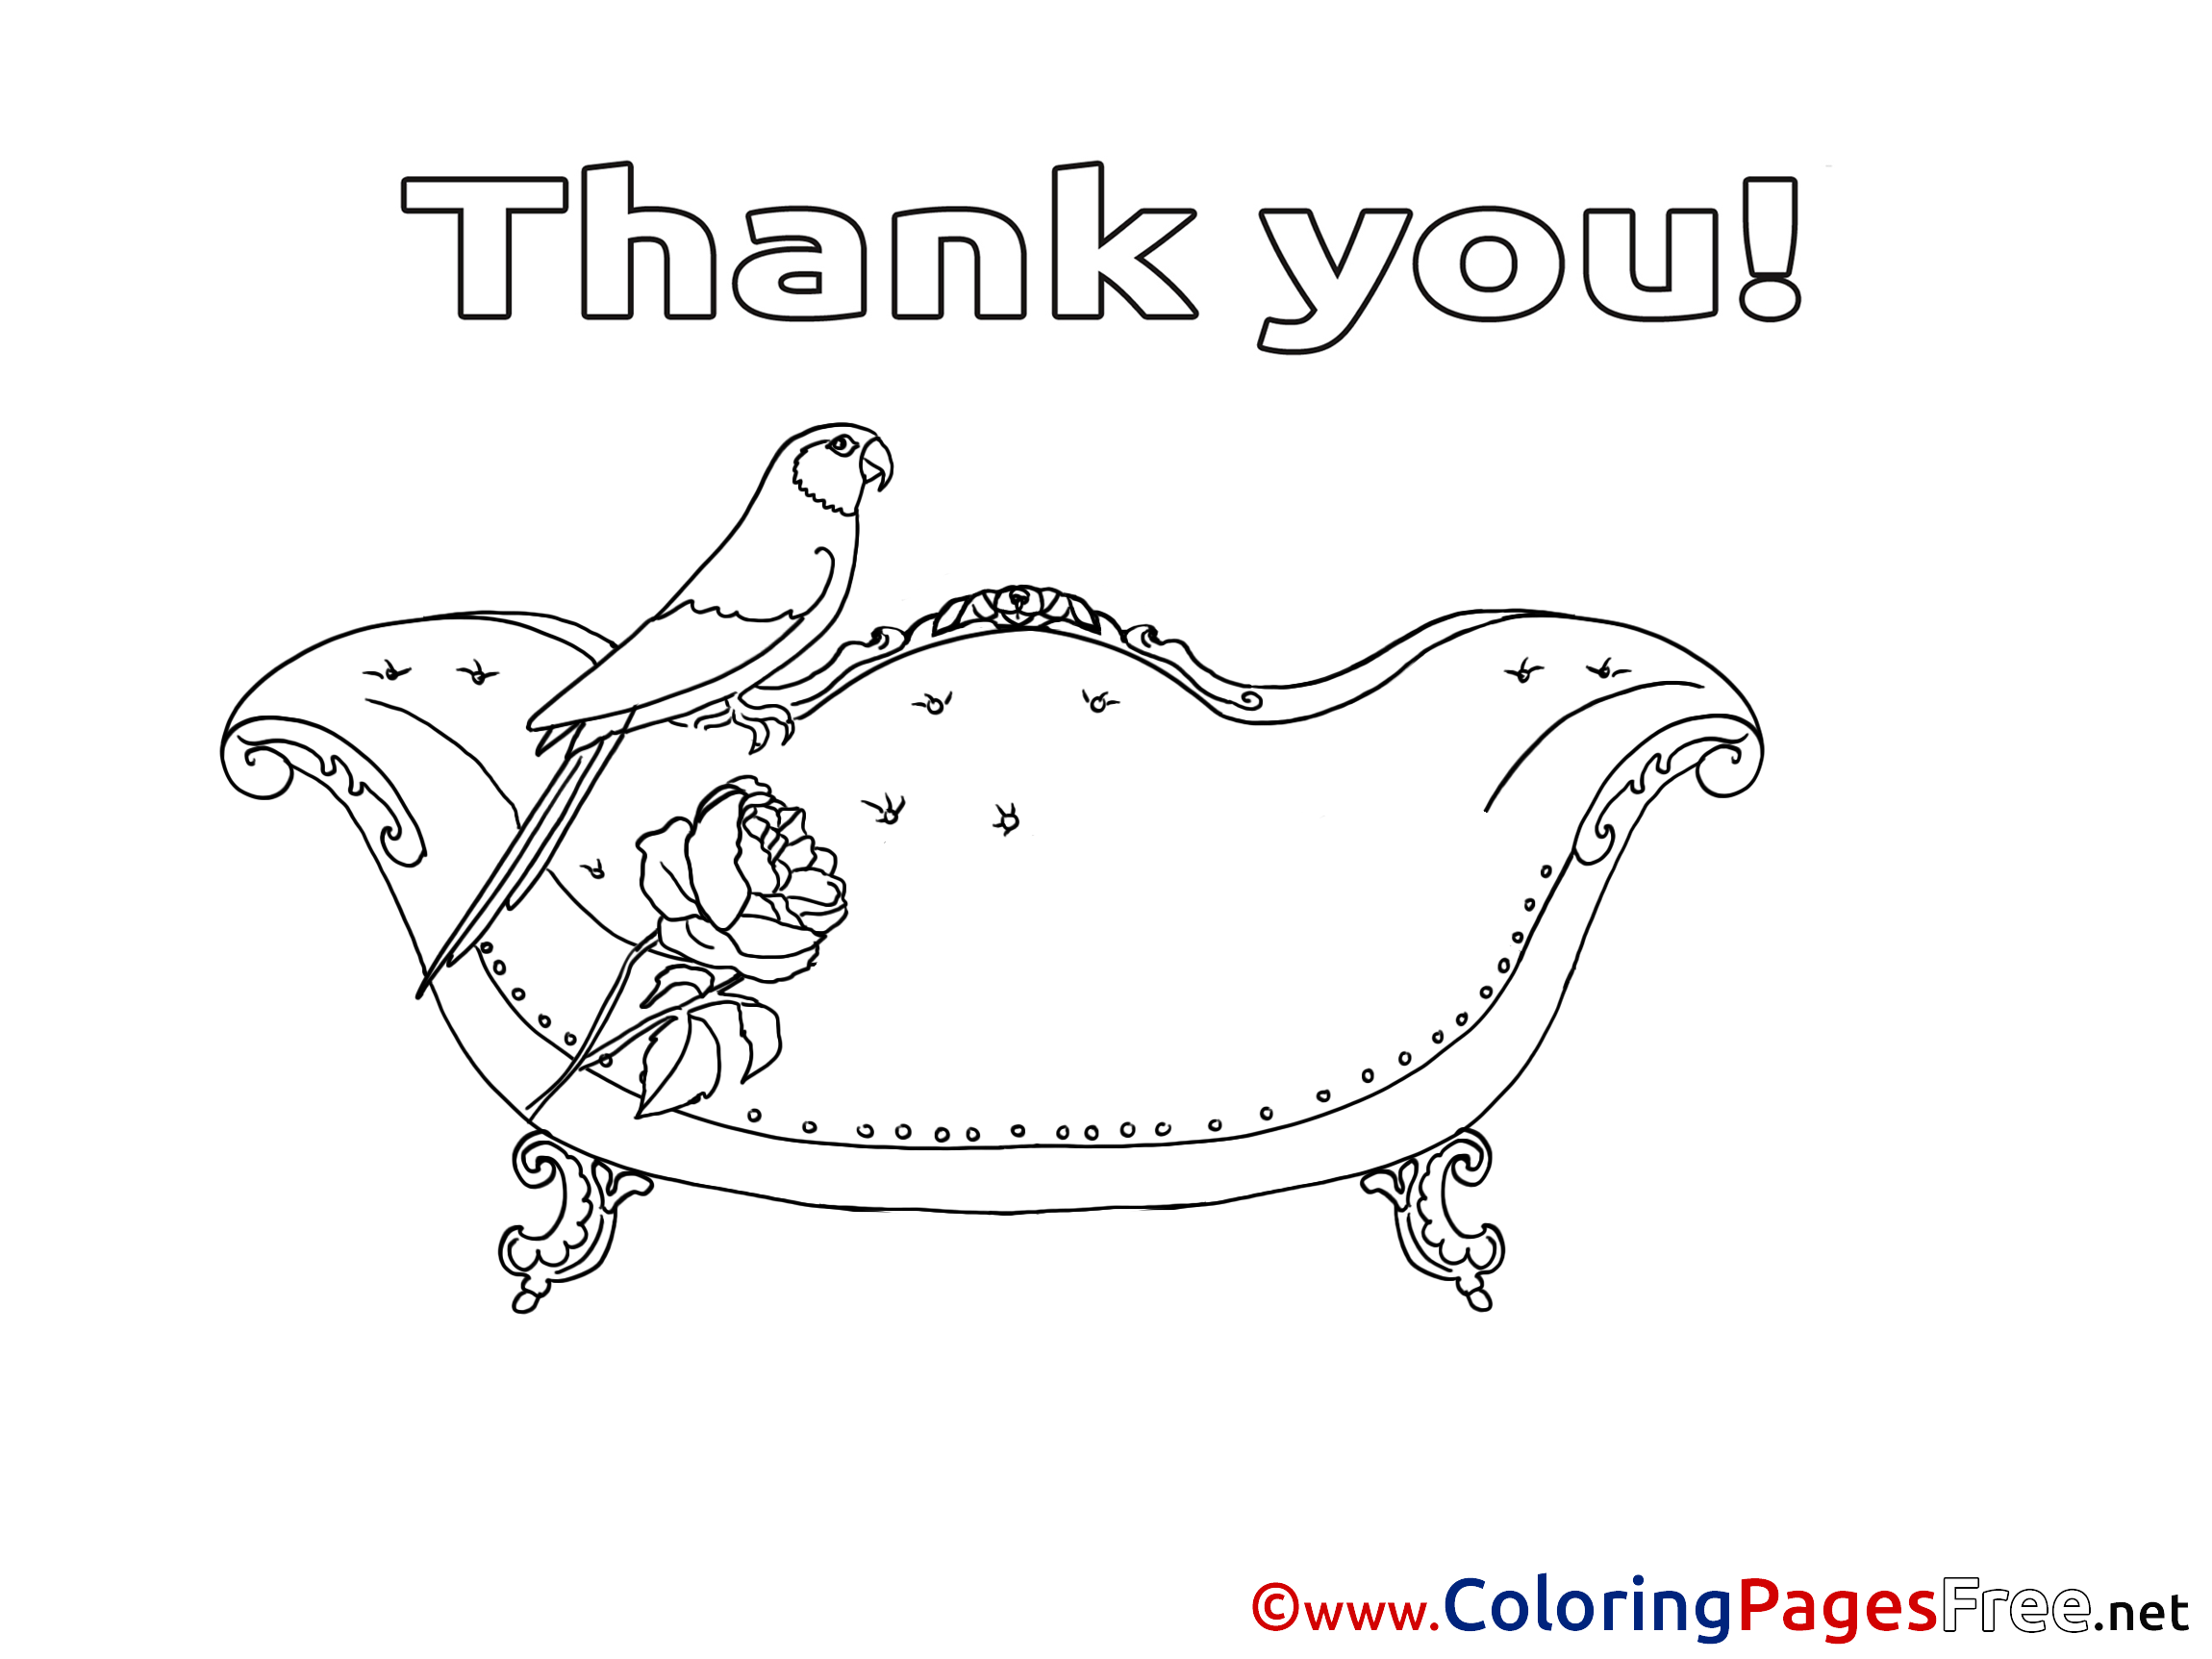 Parrot Coloring Pages Thank You for free